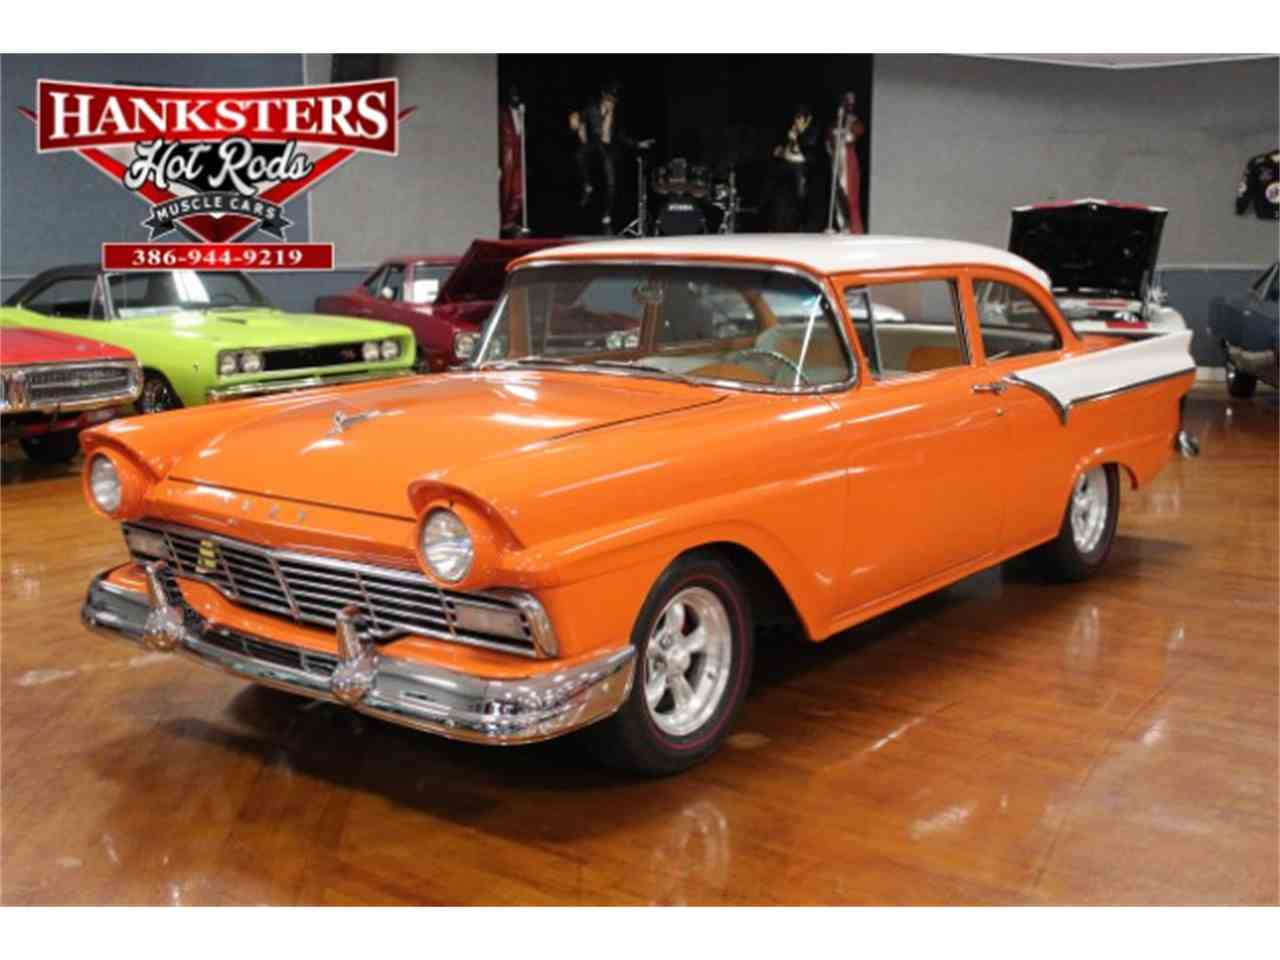 Used Cars For Sale In Indiana Under 5000 >> 1957 Ford Custom for Sale | ClassicCars.com | CC-931273